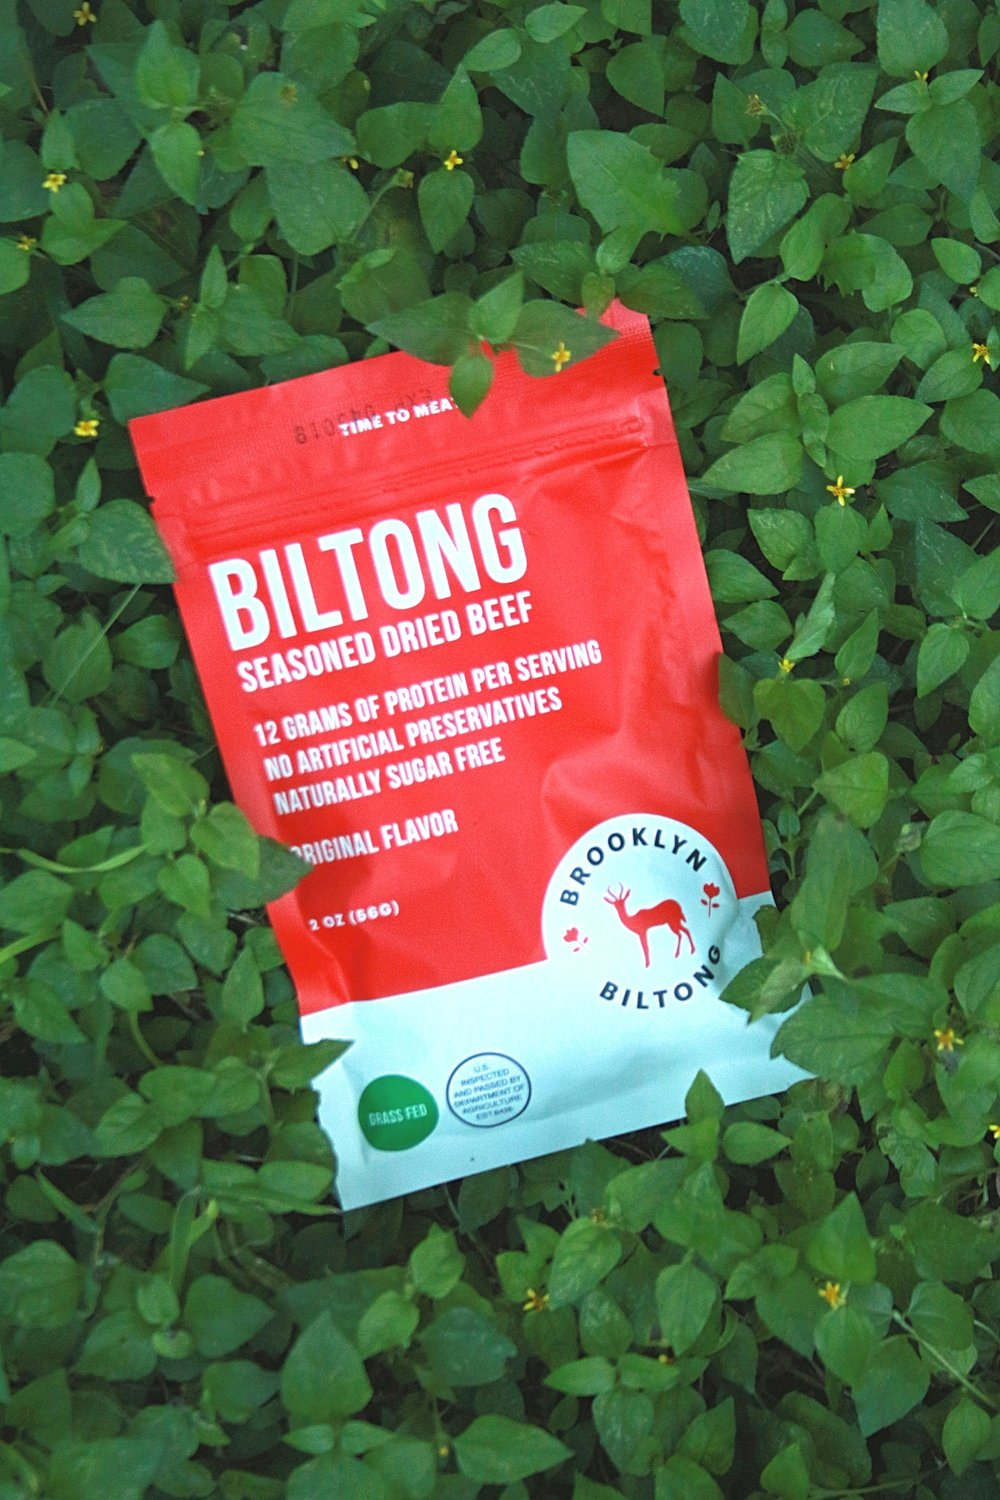 brooklyn biltong original flavor